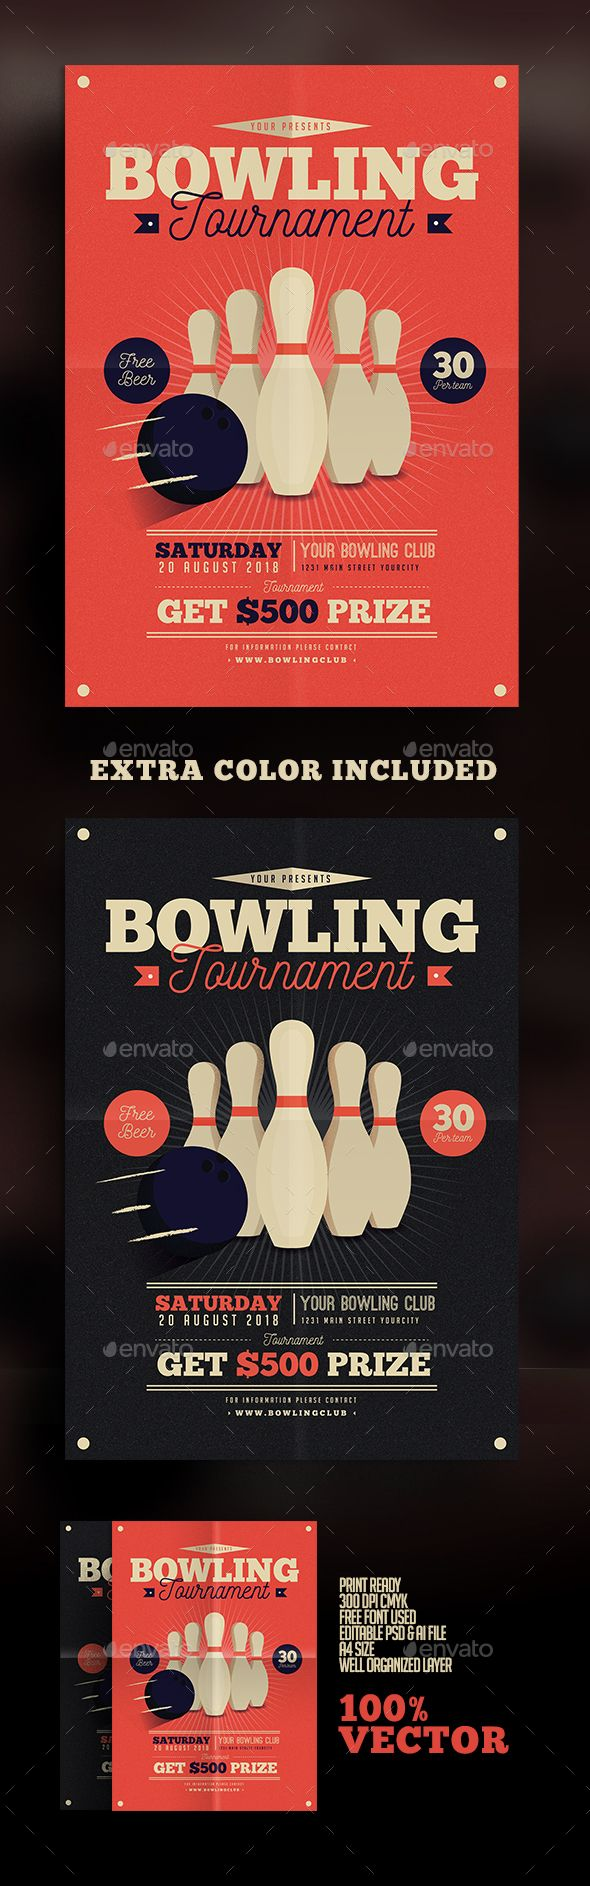 Vintage Bowling Tournament Flyer — Photoshop PSD #vector #illustration • Available here → https://graphicriver.net/item/vintage-bowling-tournament-flyer/15587134?ref=pxcr